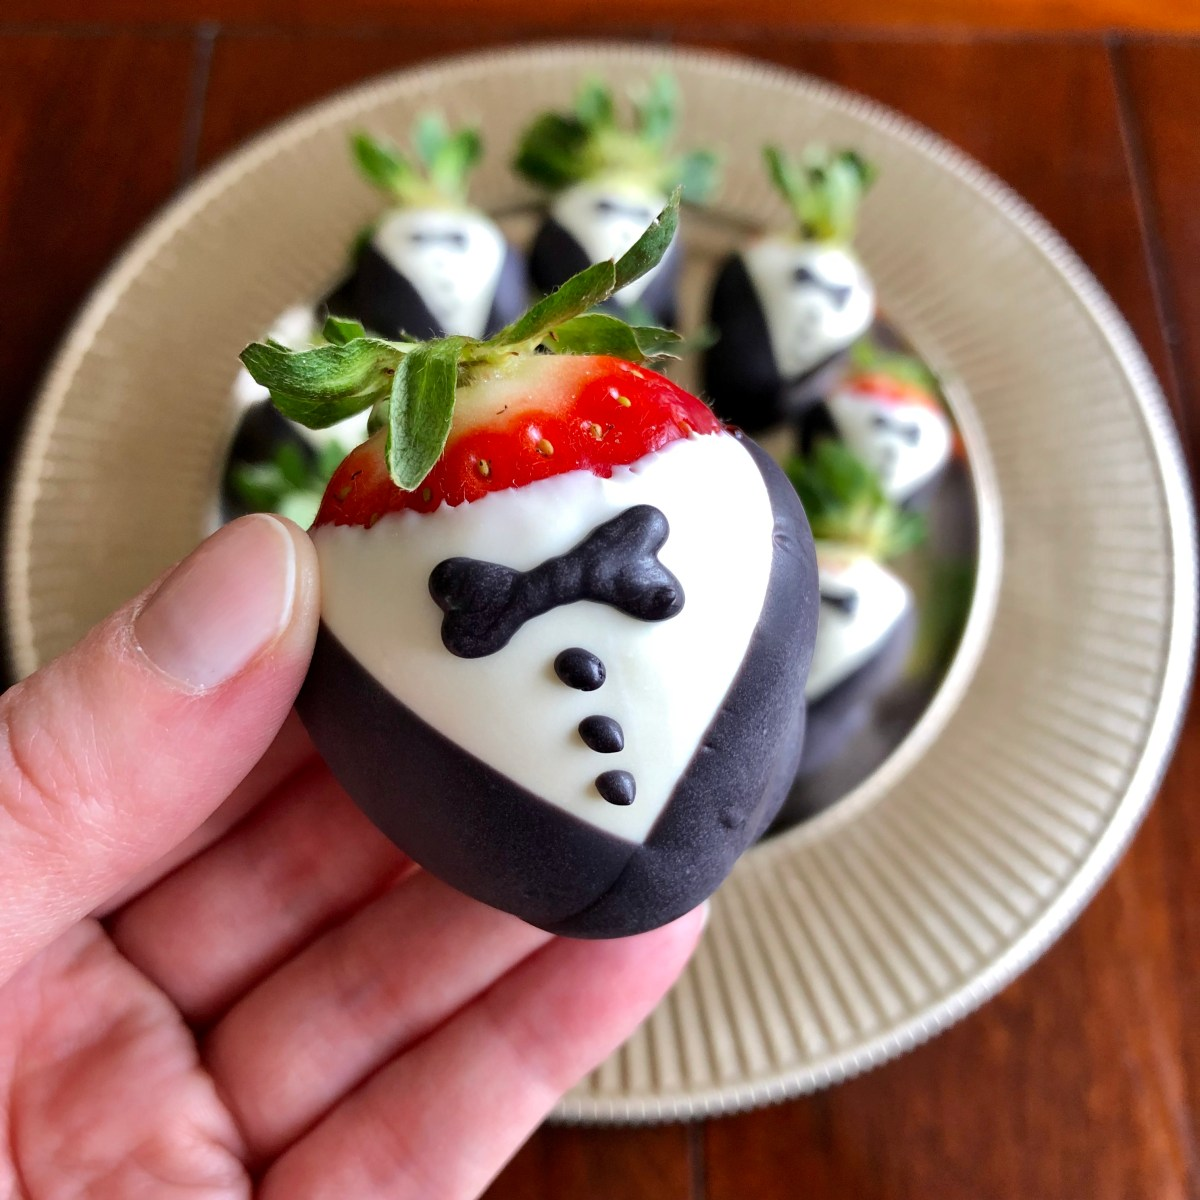 Tuxedo Strawberries by Happylifeblogspot.com #tuxedostrawberries #strawberries #weddingfavors #dessert #chocolatecoveredstrawberries